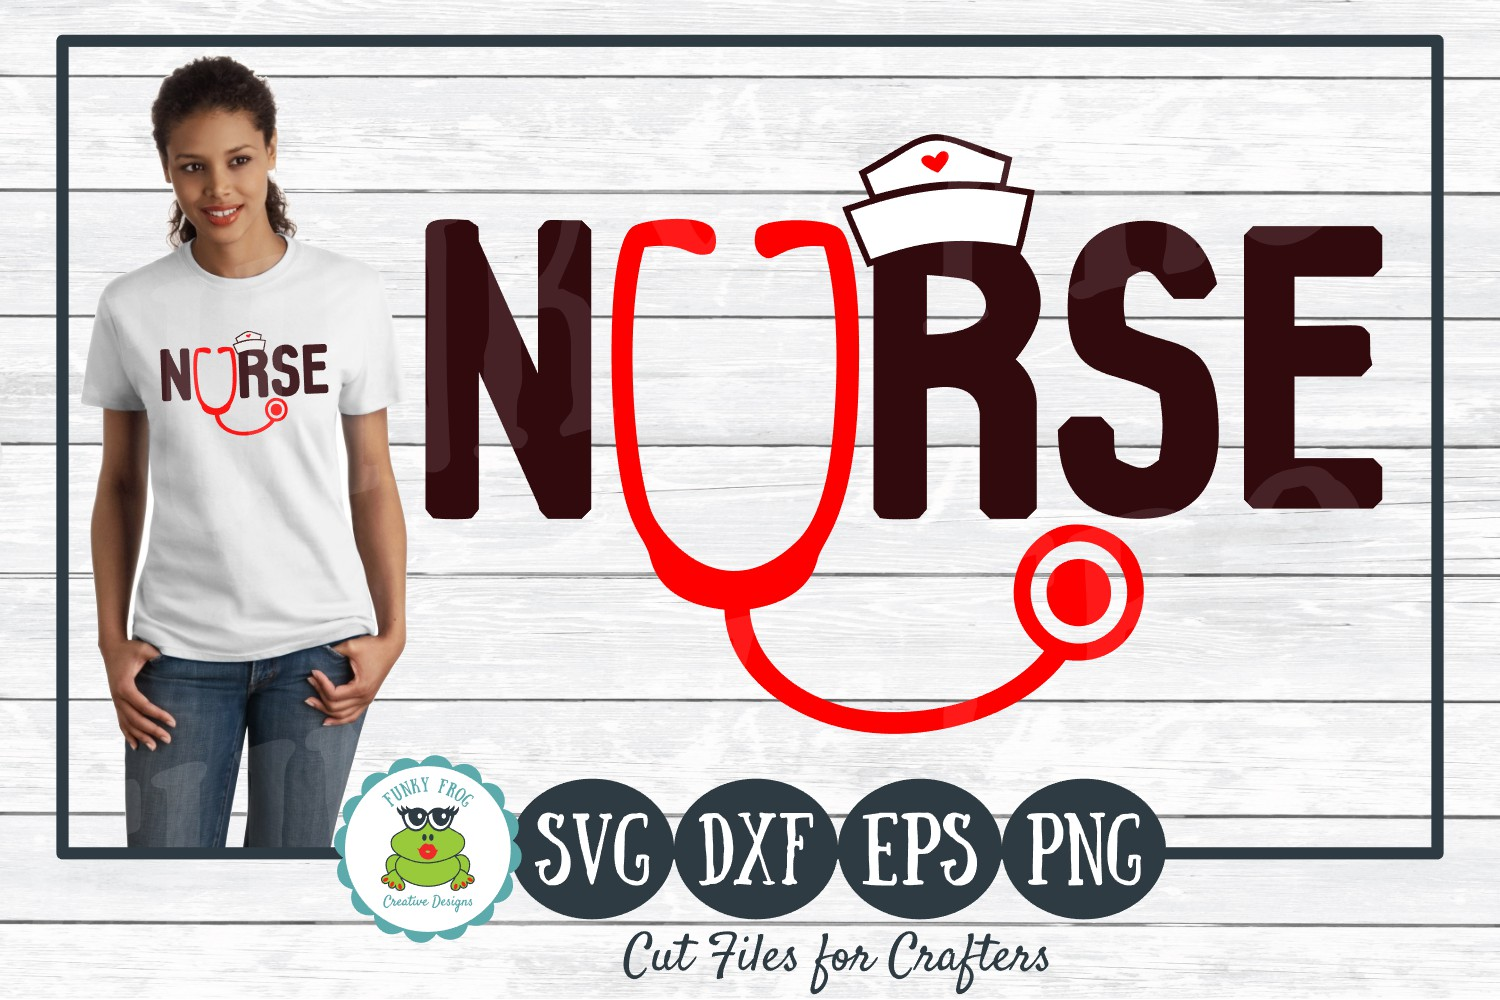 Download Free Nurse For Crafters Graphic By Funkyfrogcreativedesigns for Cricut Explore, Silhouette and other cutting machines.